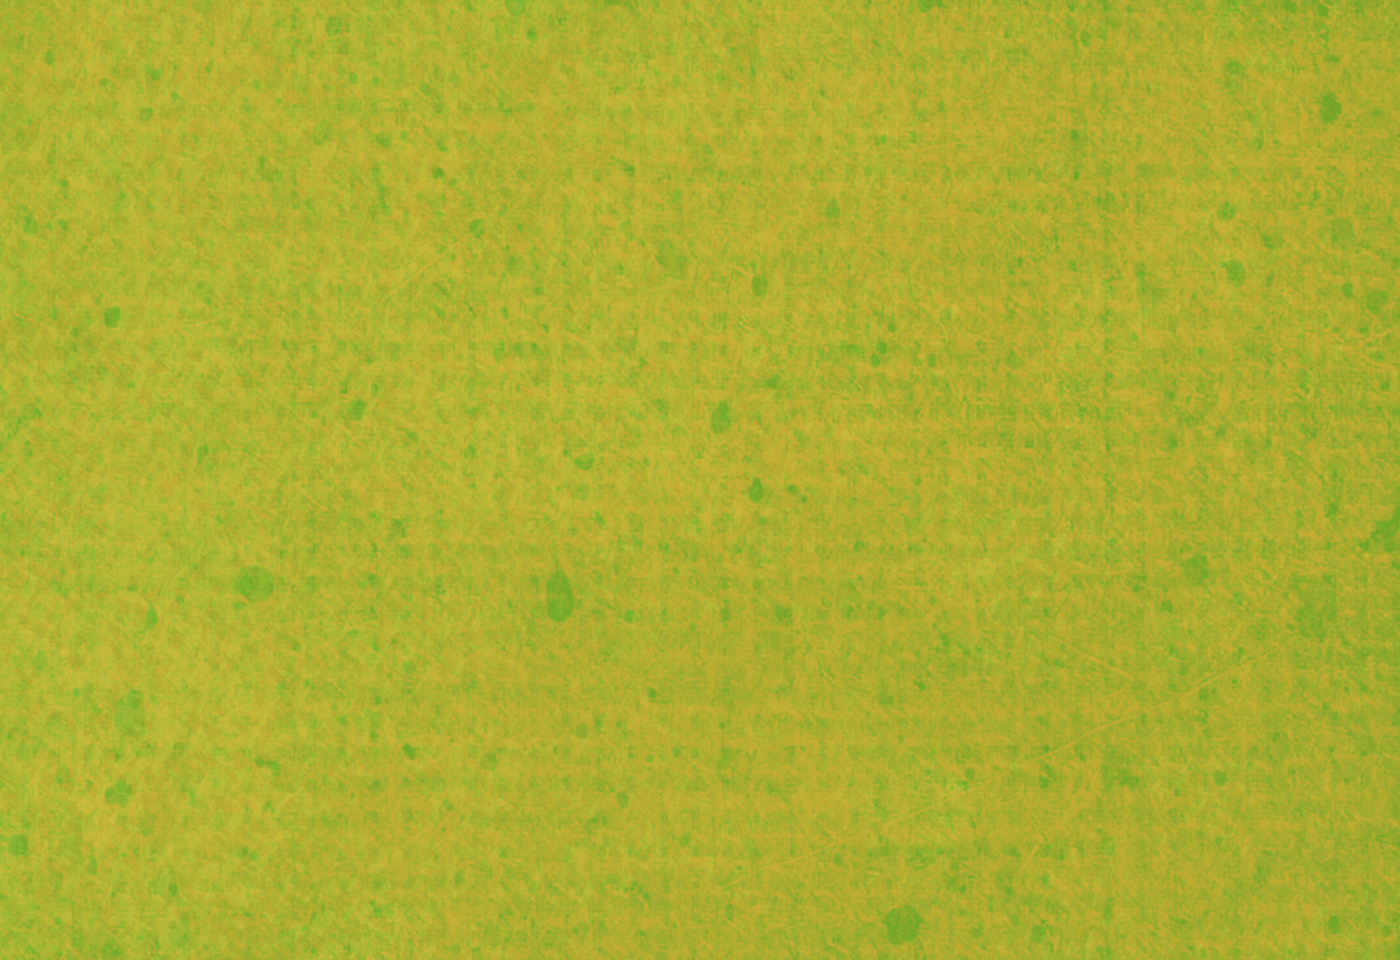 Background-Green